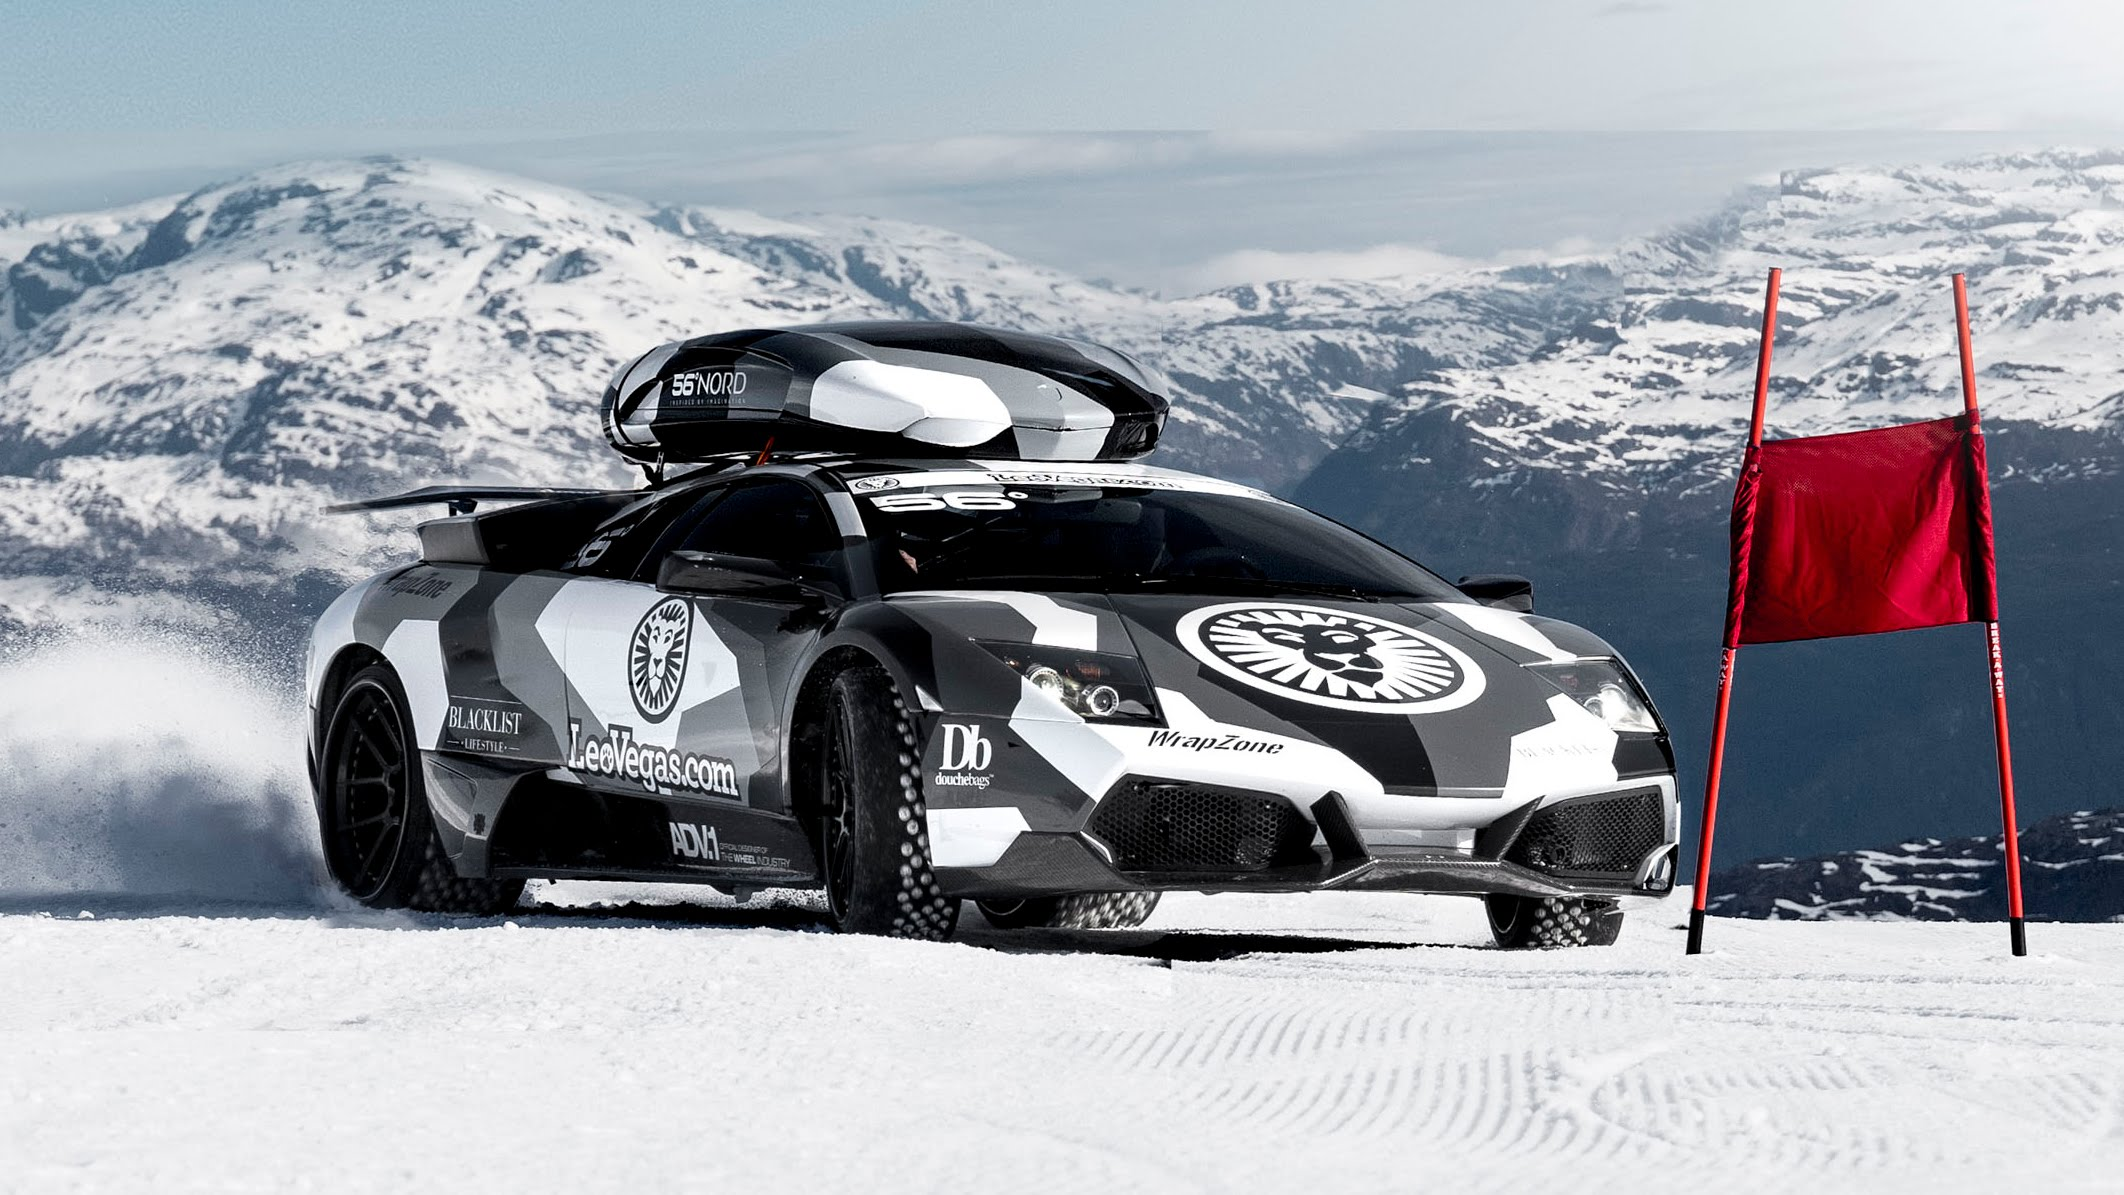 Must Watch Video Crazy Red Bull Driver Races Lambo On Glacier And